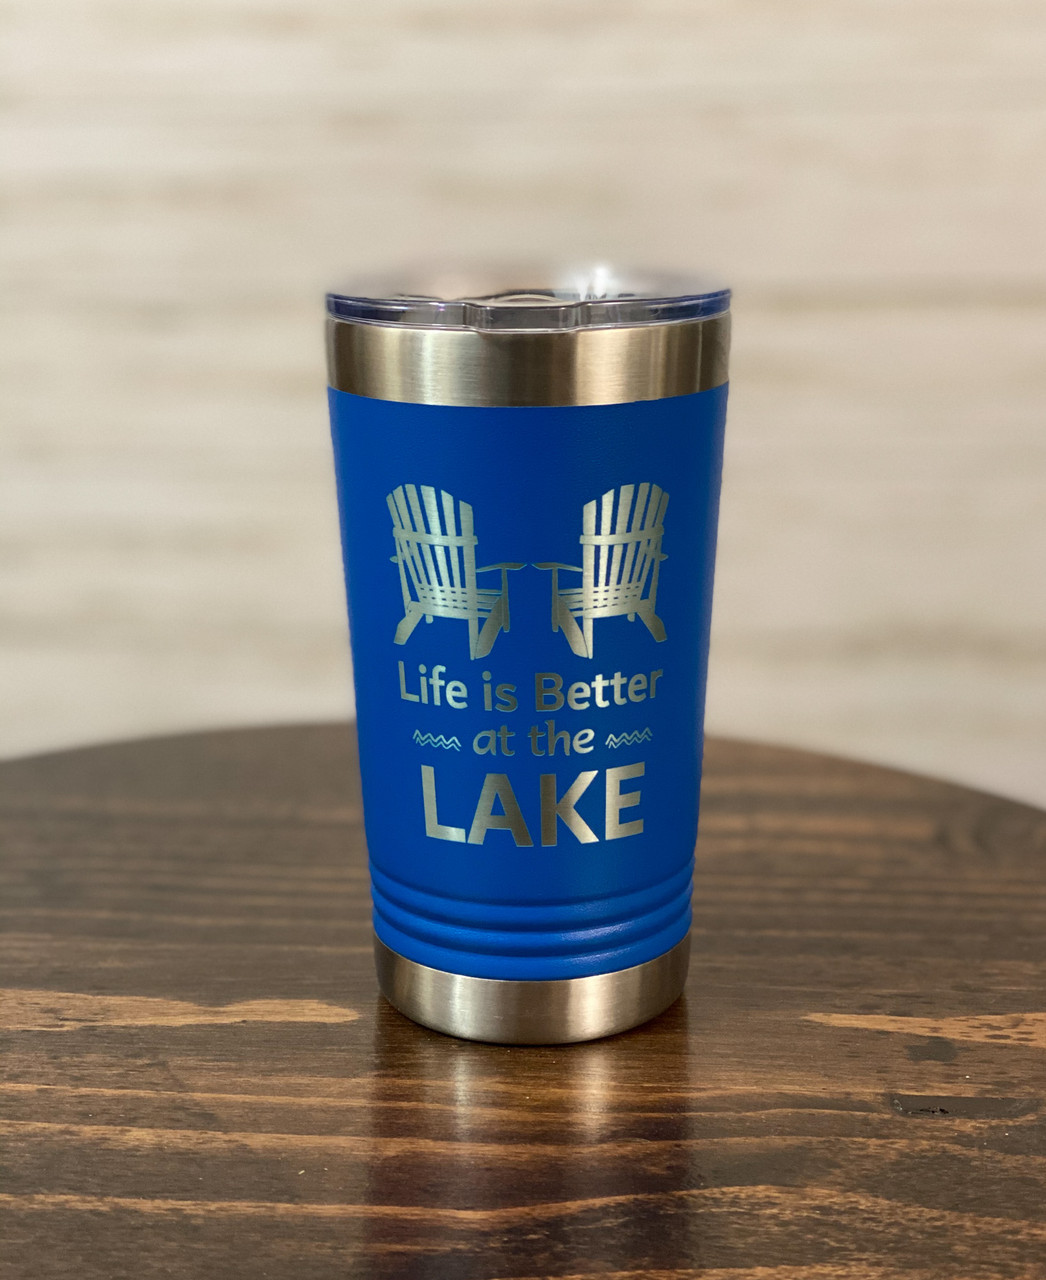 Life is Better at the Lake Pint Glass 16 oz.